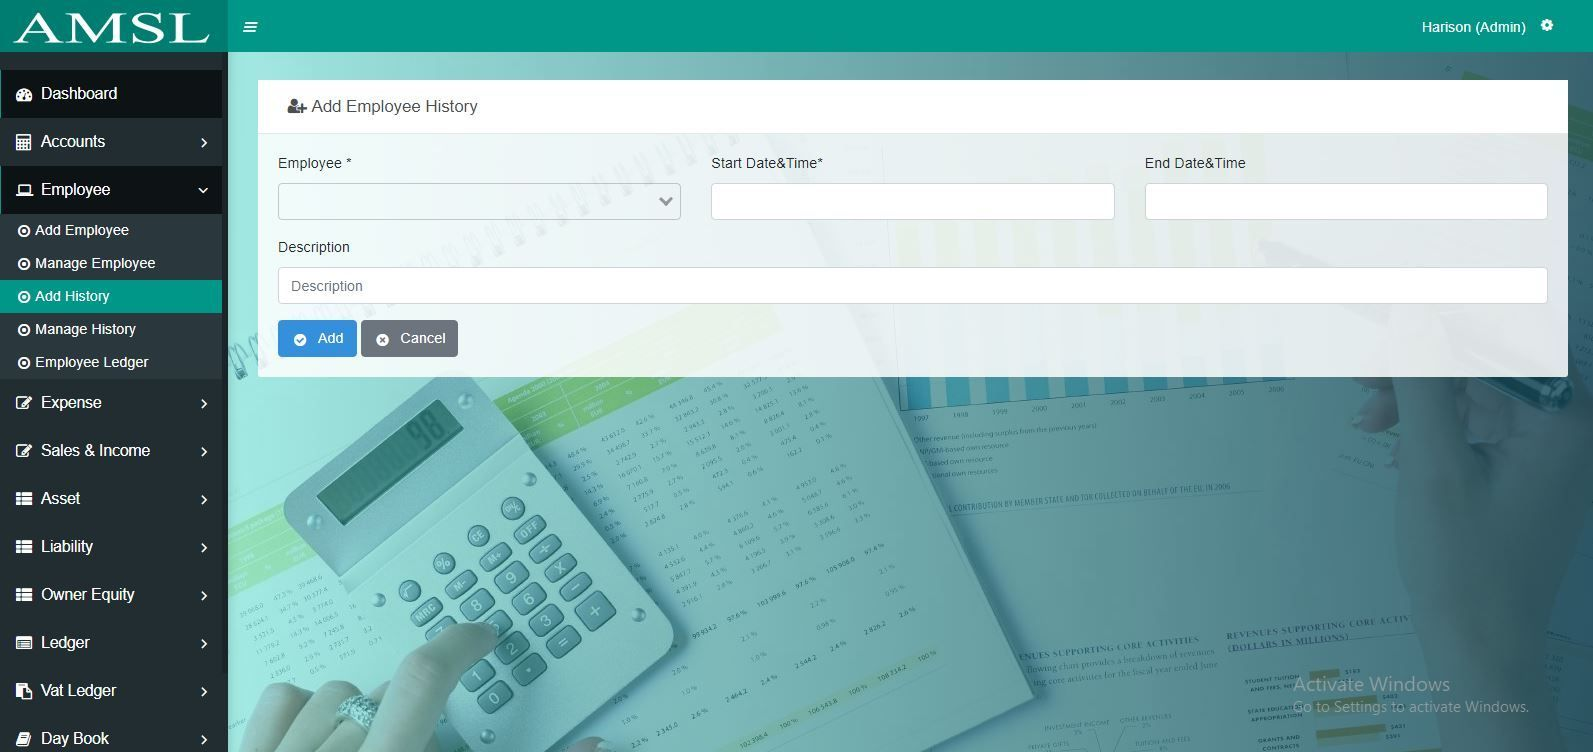 AMSL - Service Based Accounting Management System  Screenshot 3